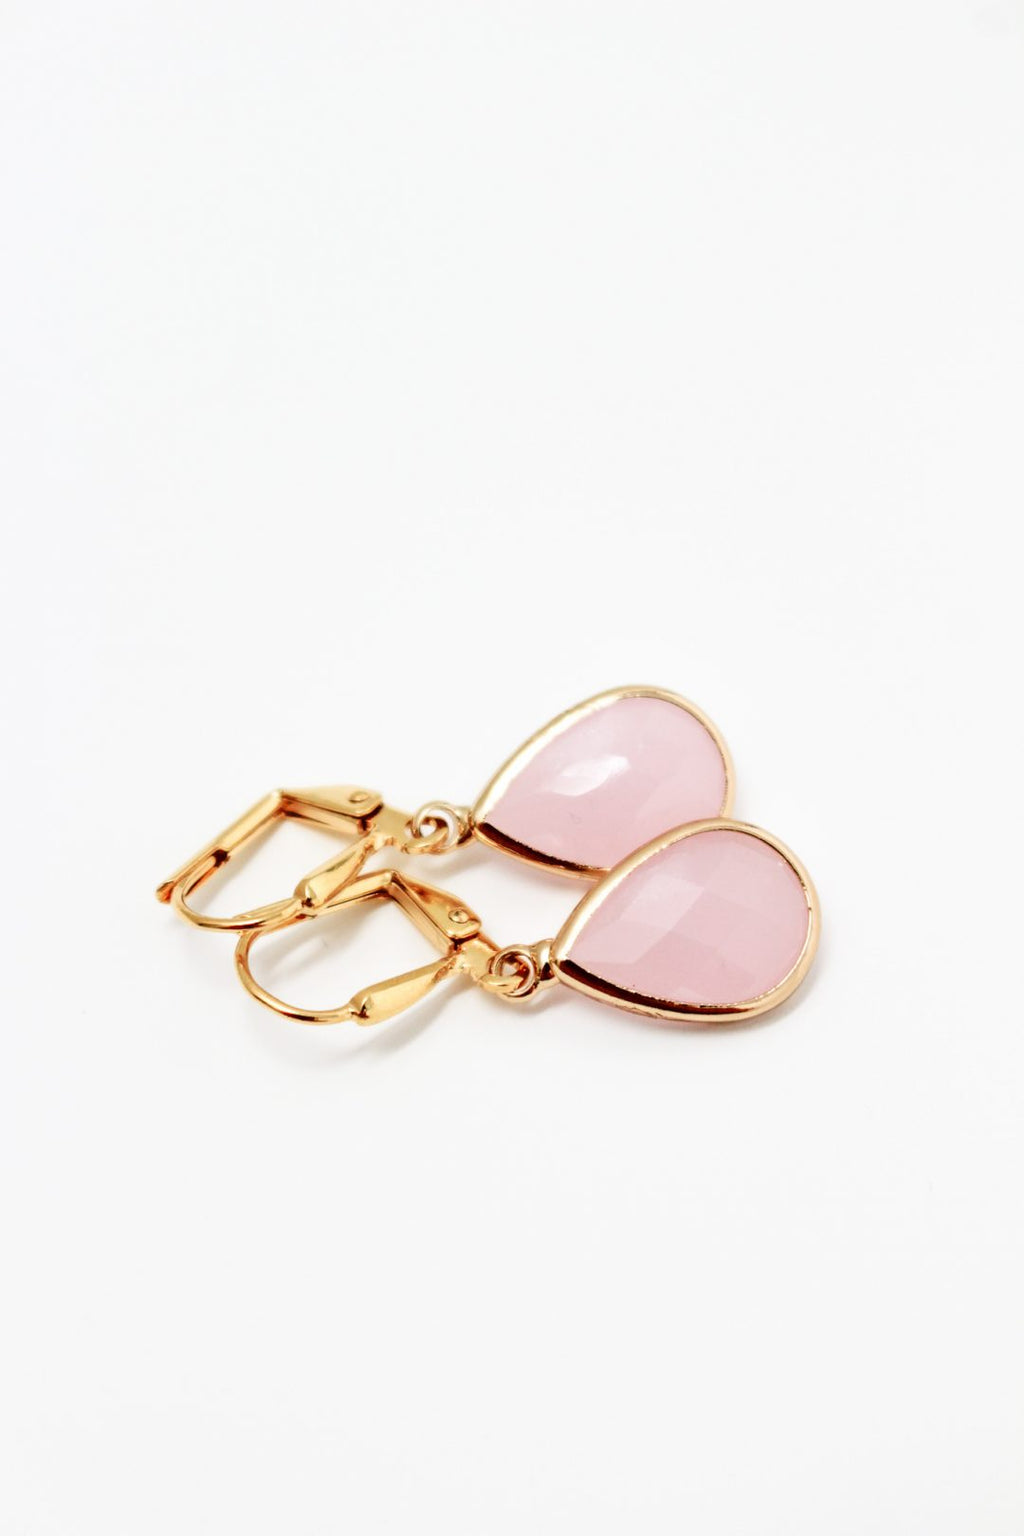 K Kajoux Ellie Teardrop Earrings  Pink Rose/ Gold Short